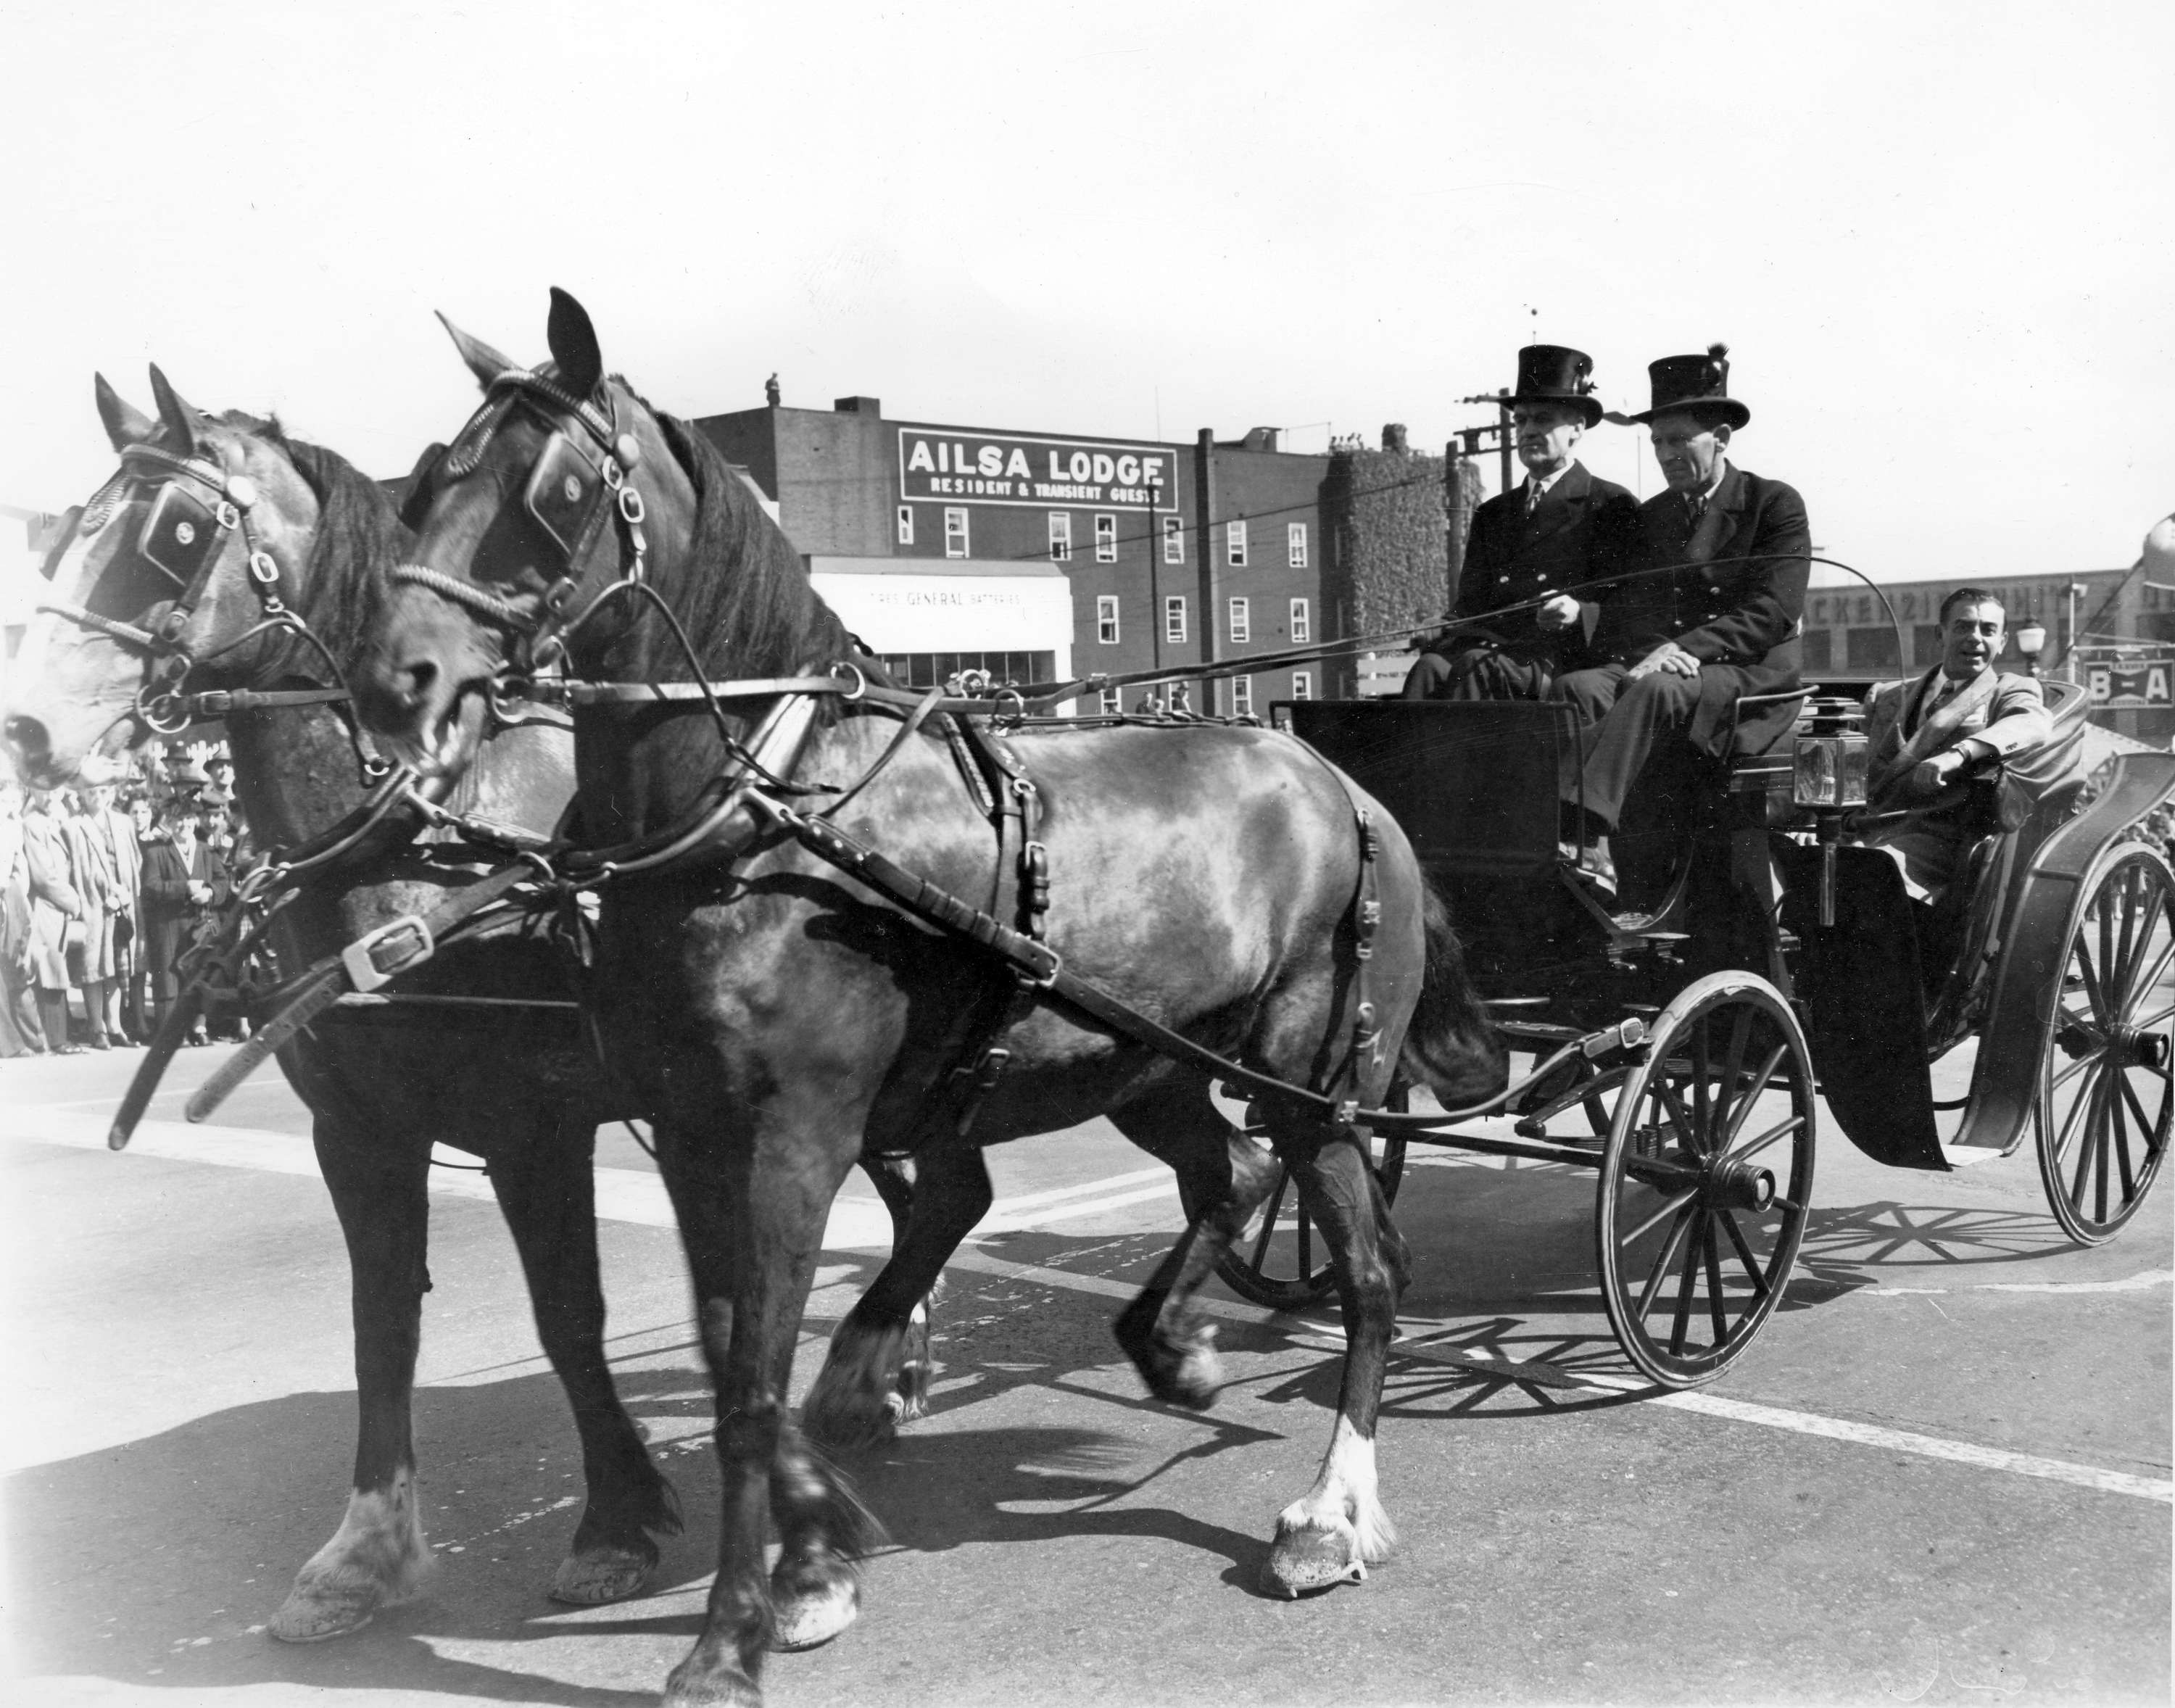 Drawn vehicle horse Original carriage Jubilee A City